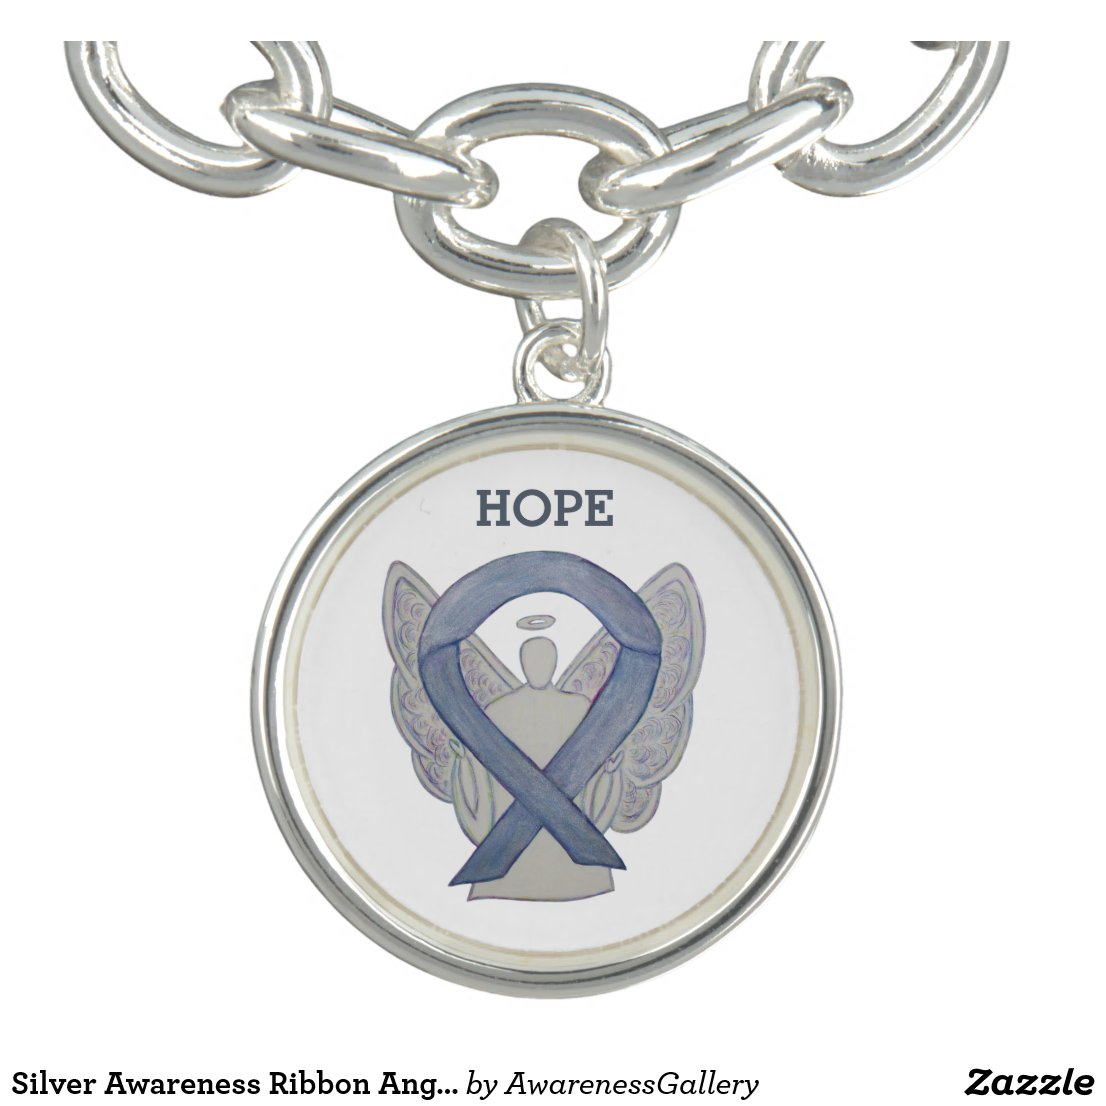 Silver Awareness Ribbon Angel Charm Bracelet